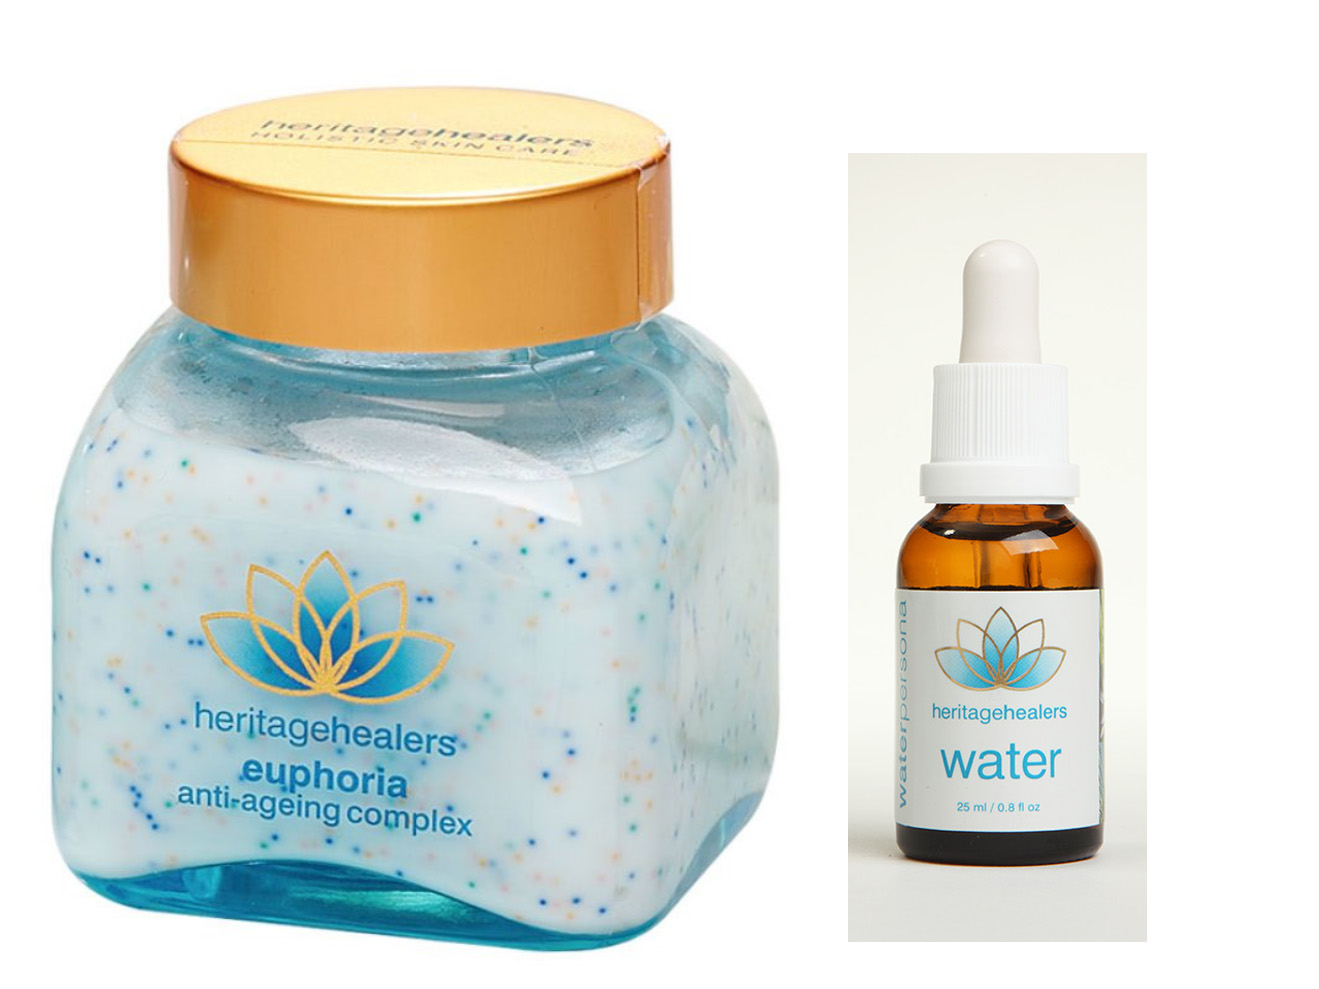 Heritage Healers Water Wildflower Essence Remedy